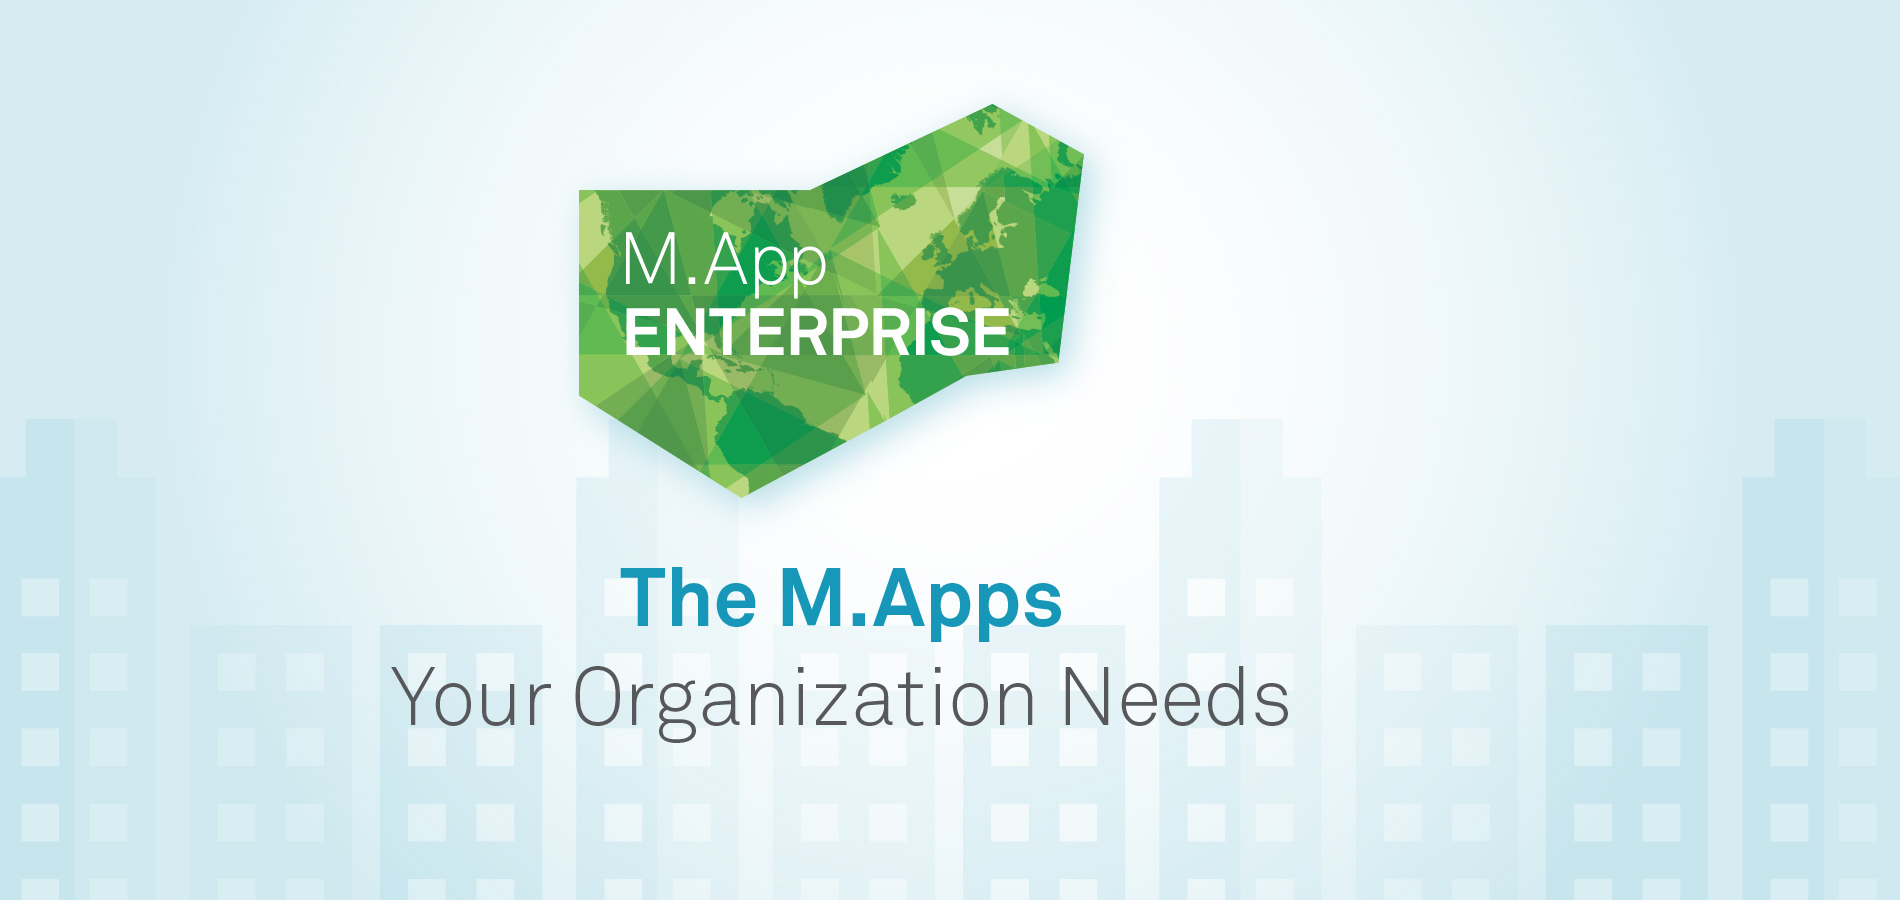 M.App Enterprise software from Hexagon Geospatial